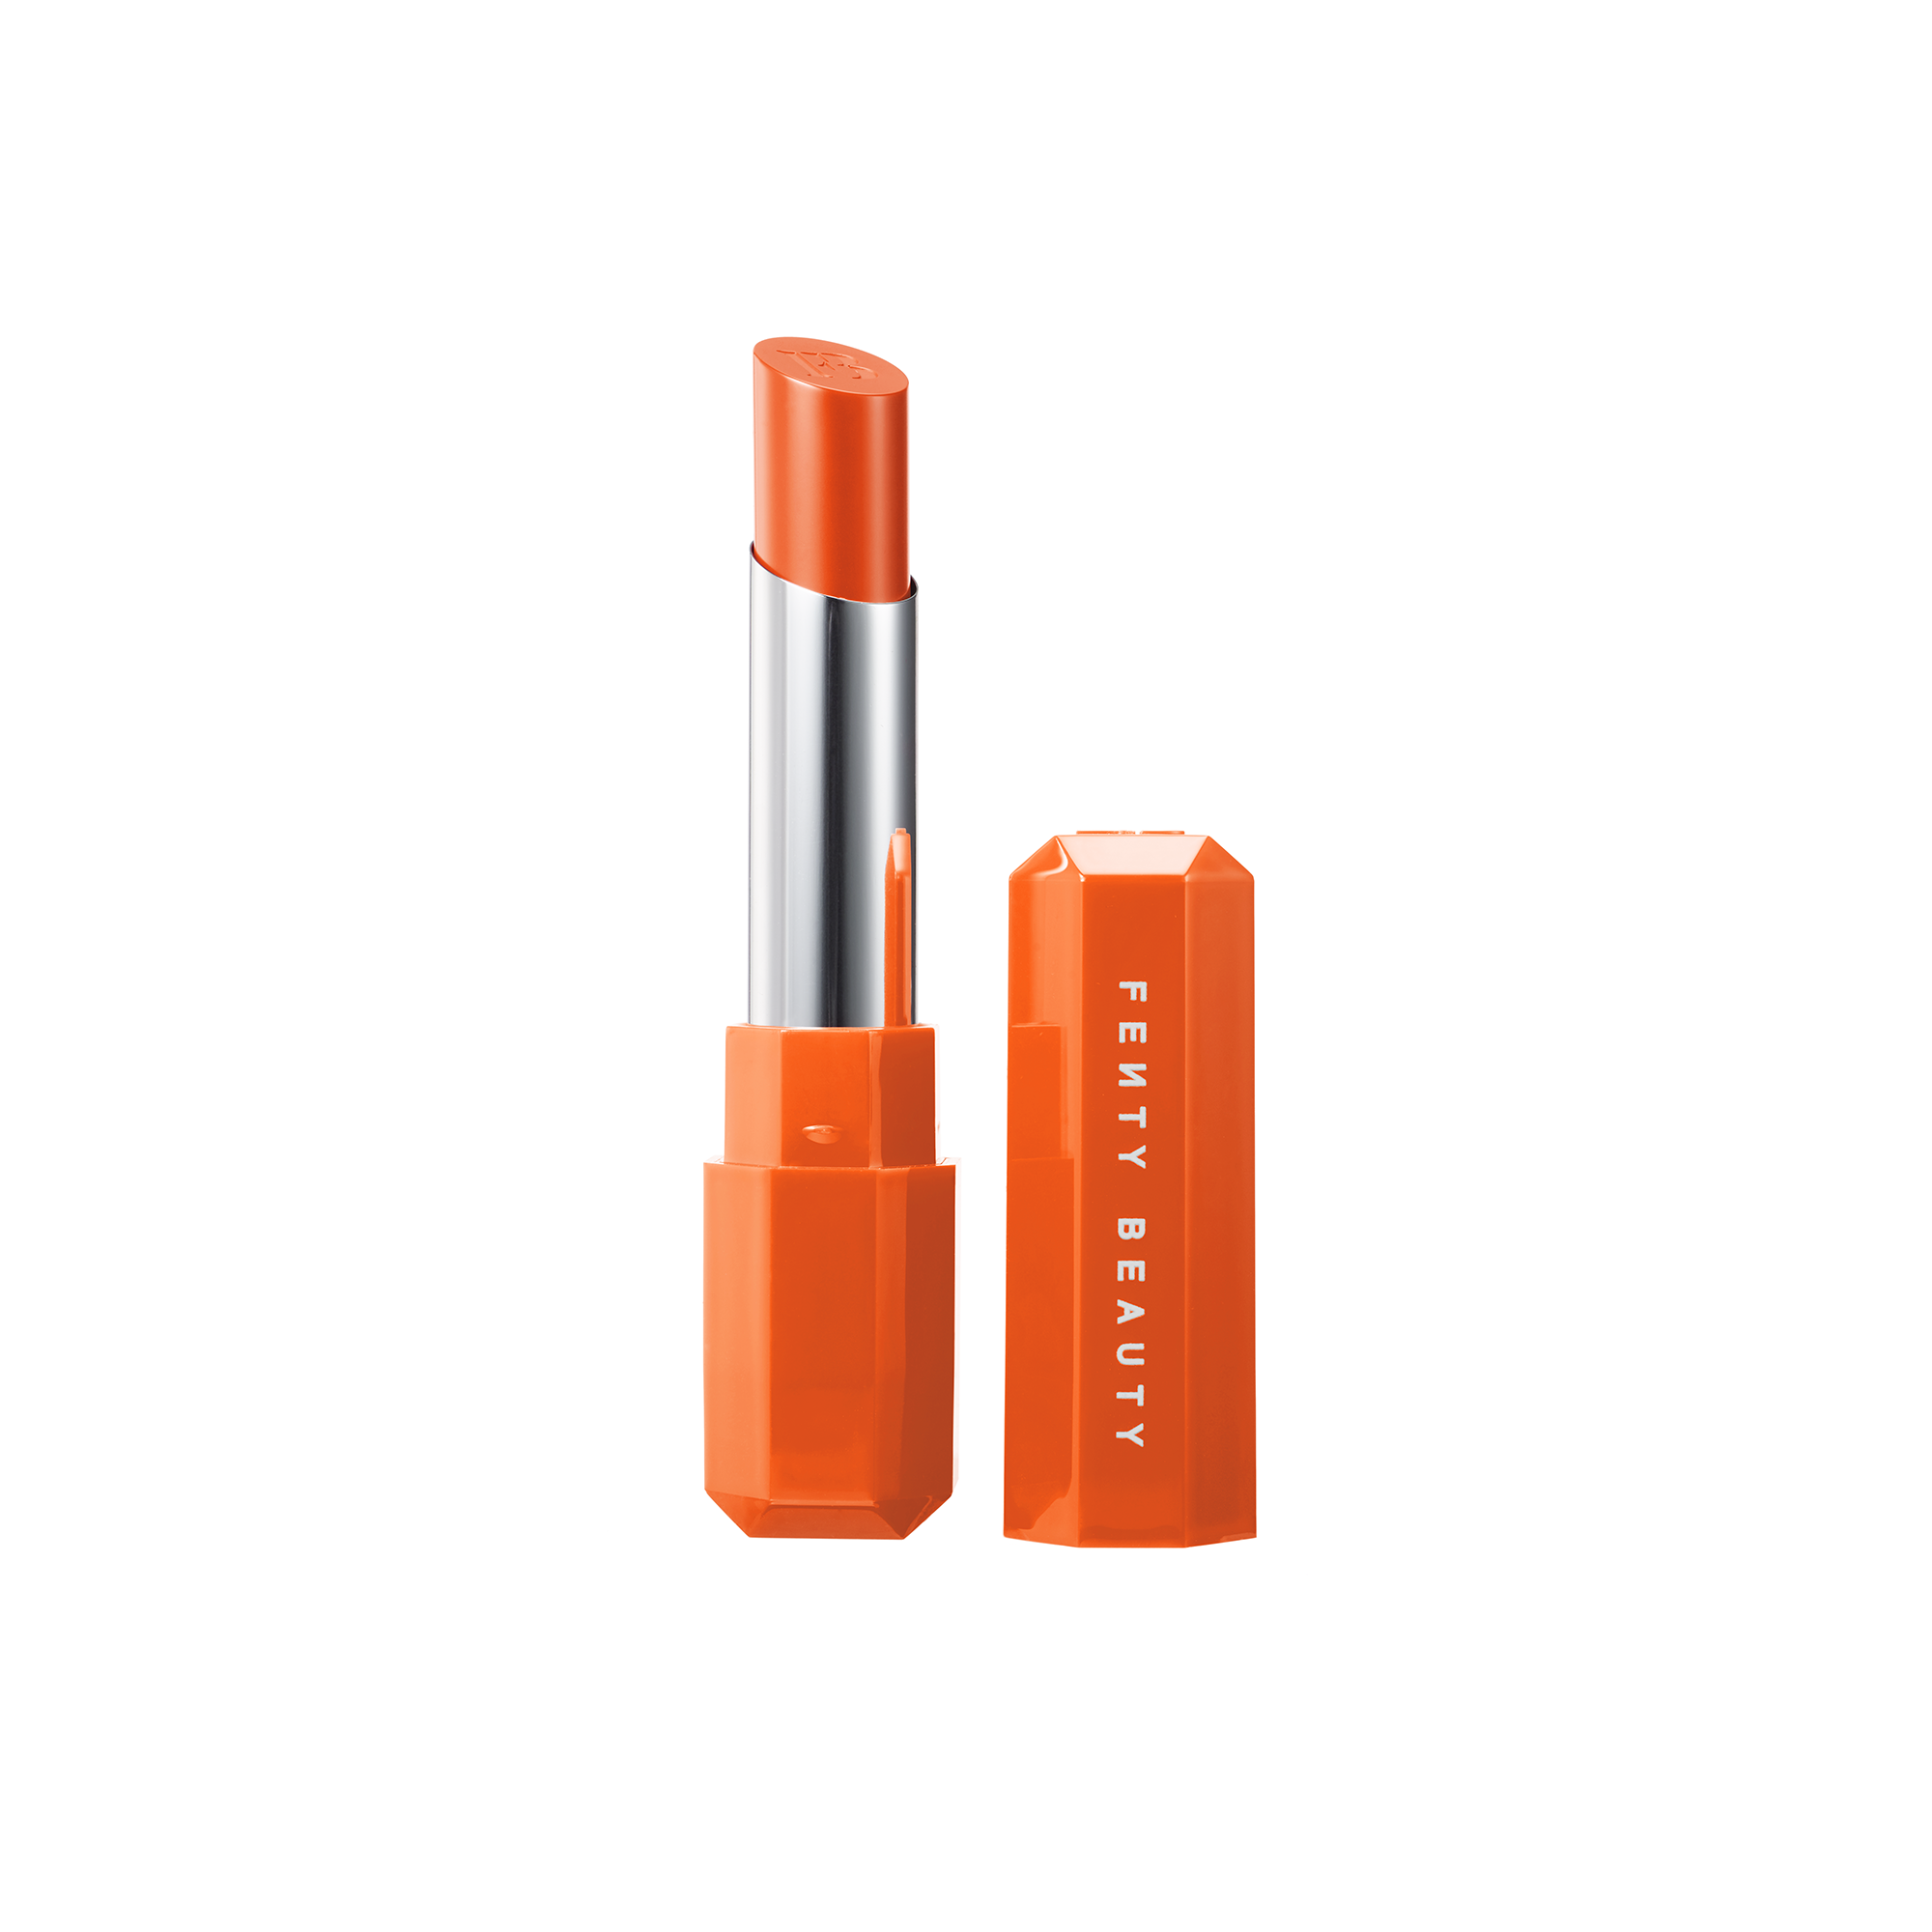 Poutsicle Juicy Satin Lipstick in Sun Snatched, $32